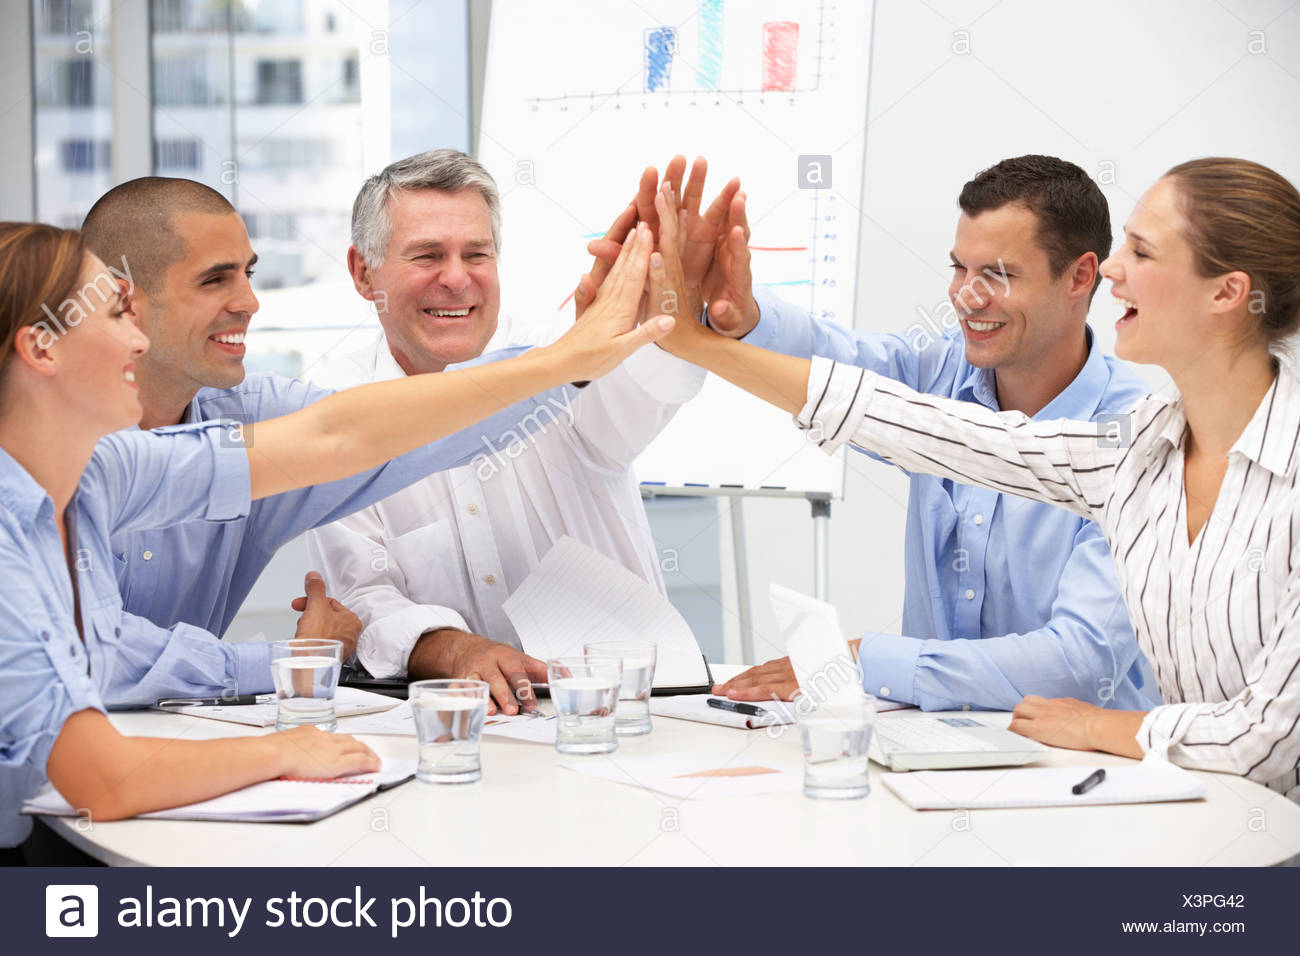 Colleagues in business meeting Stock Photo - Alamy